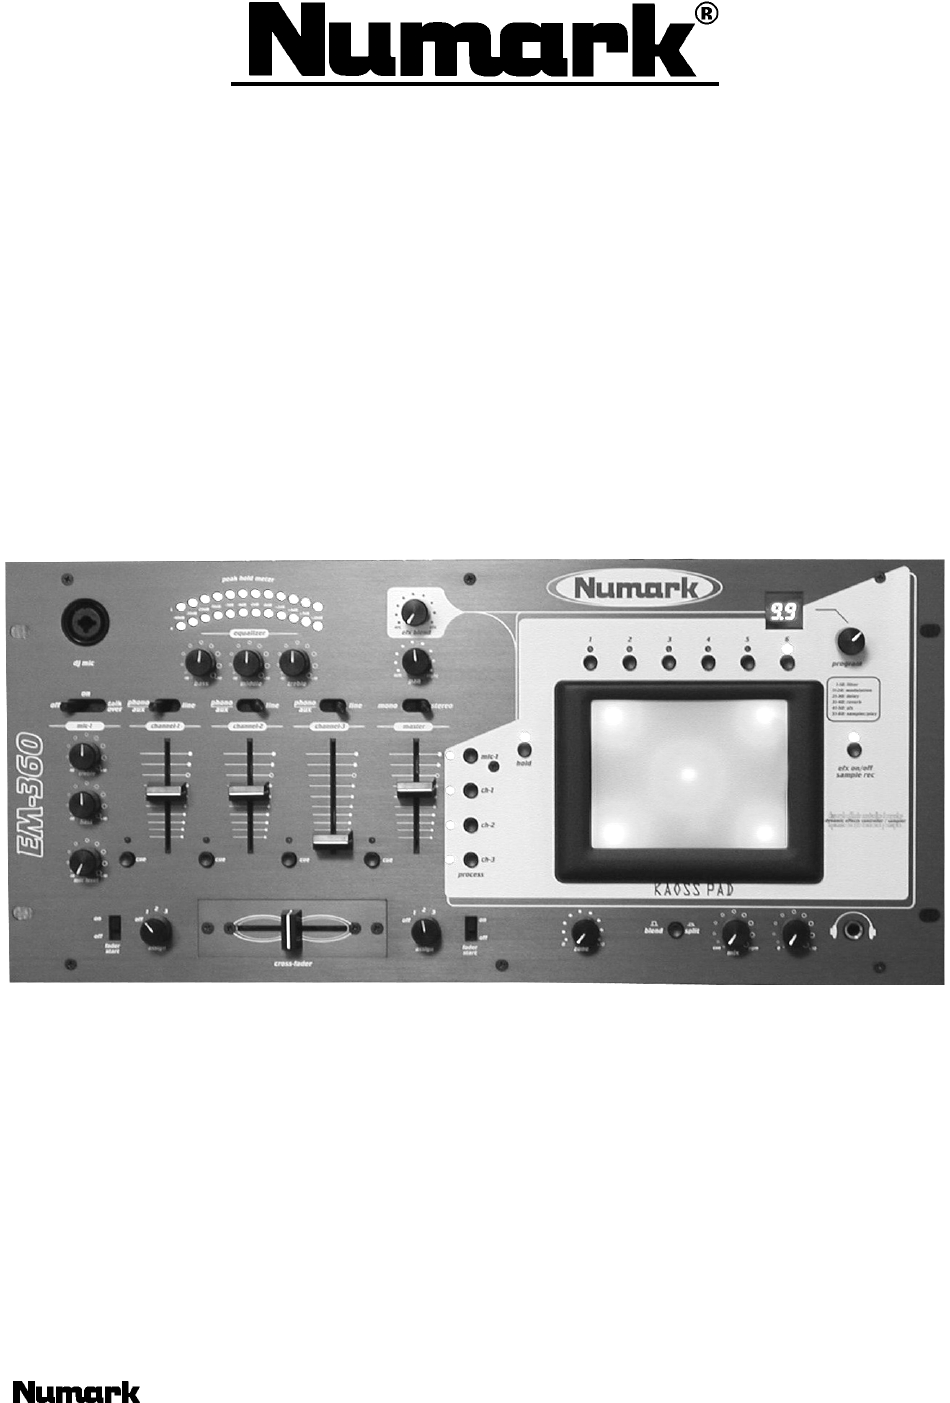 numark industries dj equipment em360 user guide manualsonline com rh music manualsonline com